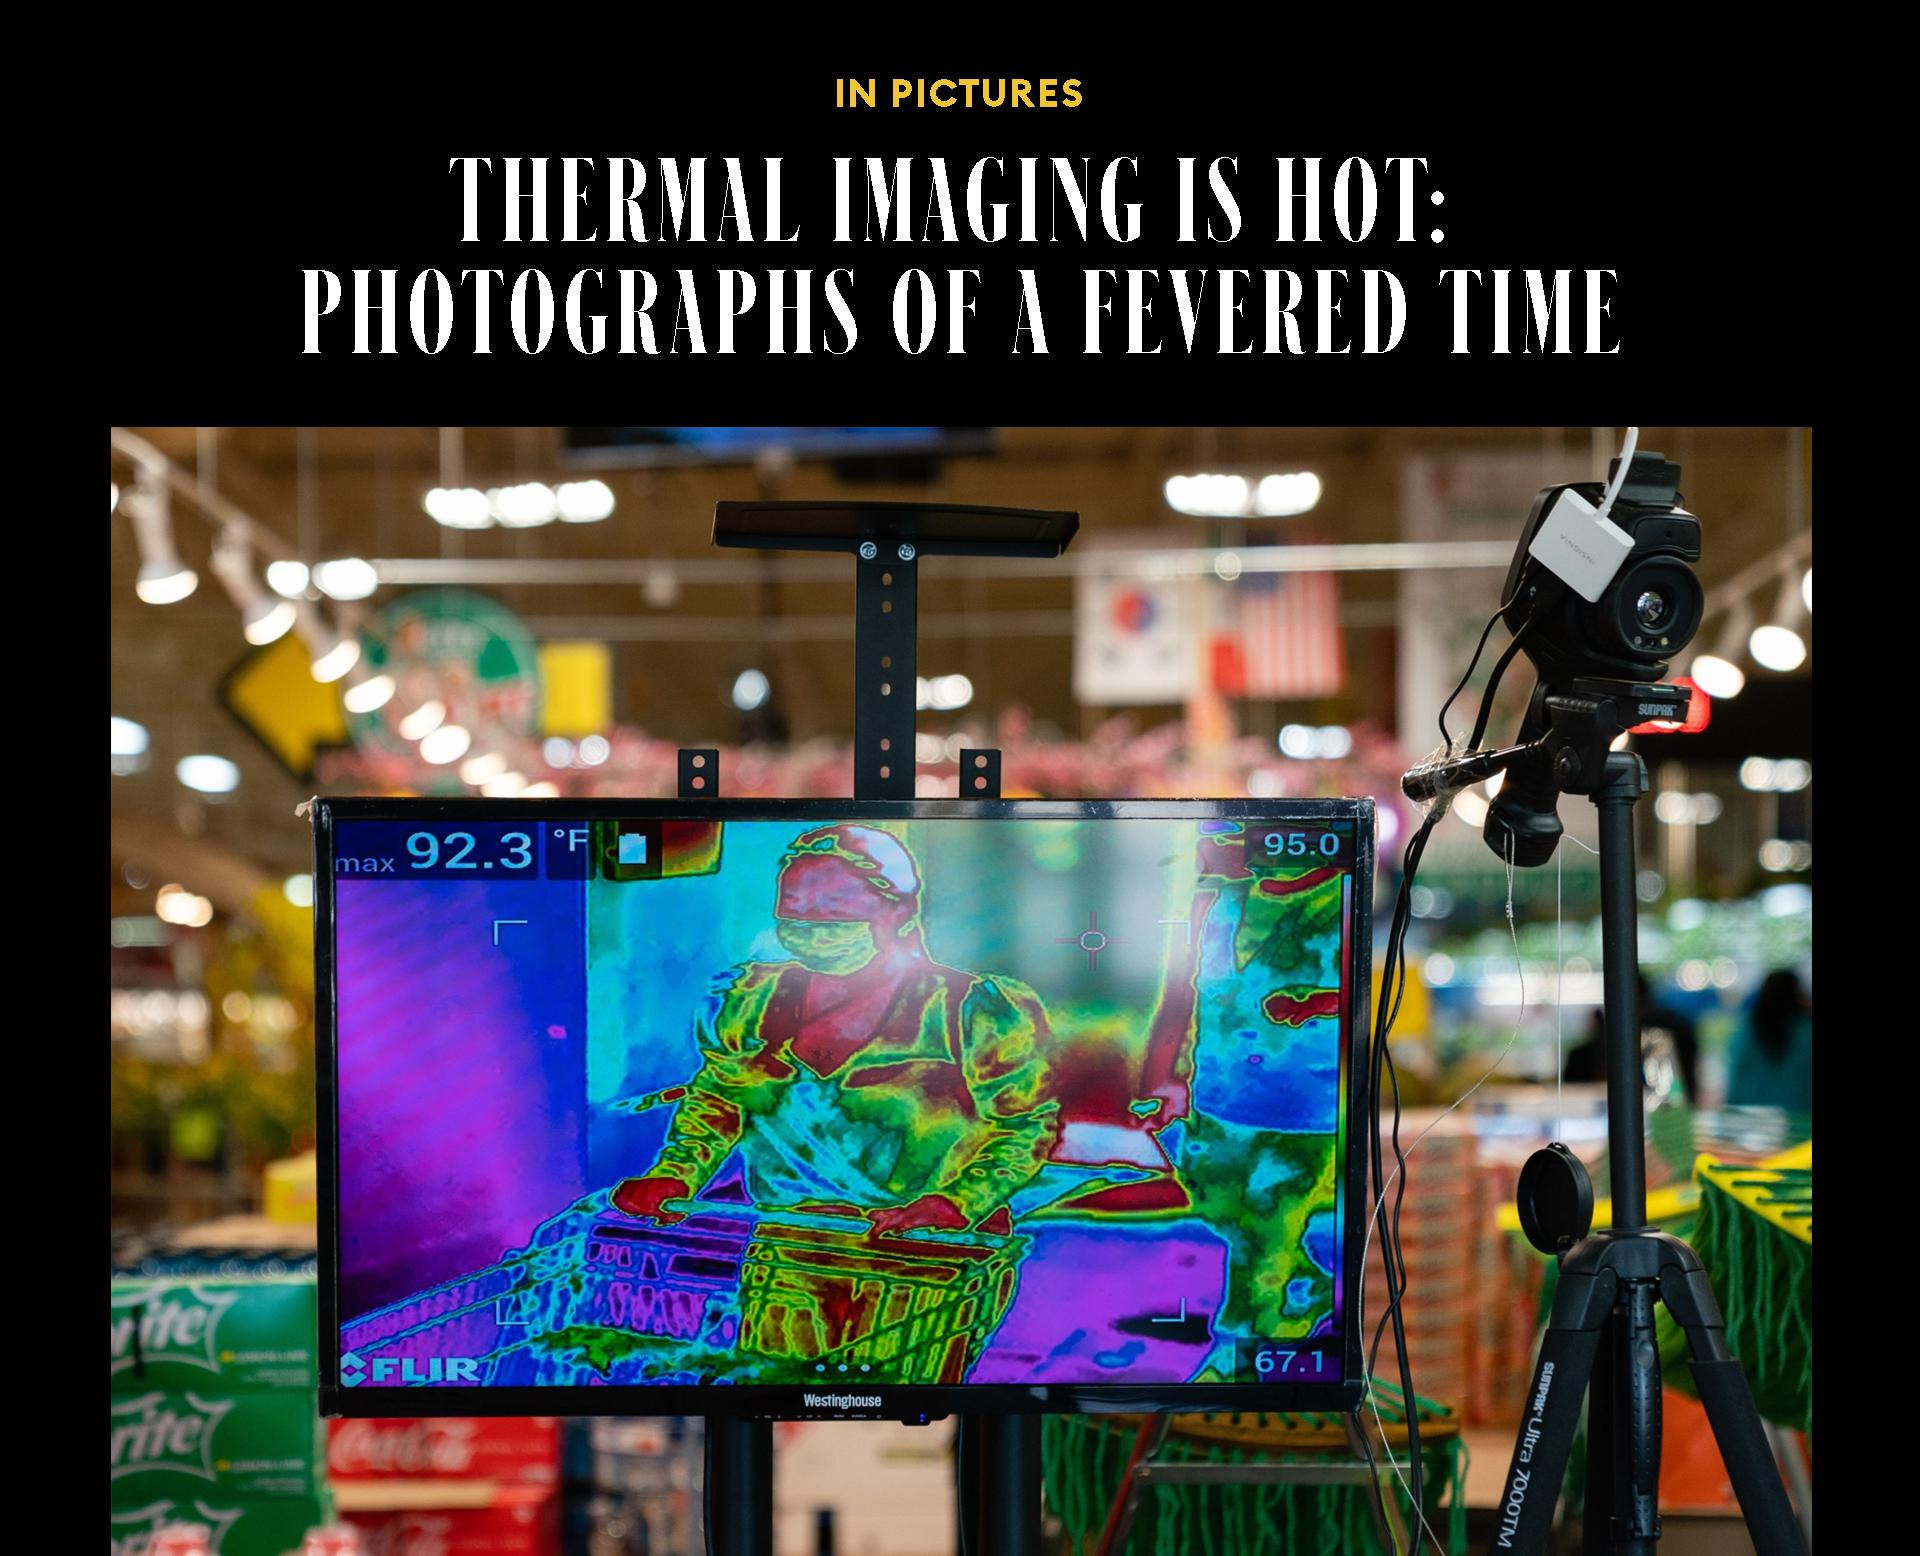 Thermal Imaging Is Hot: Photographs Of A Fevered Time